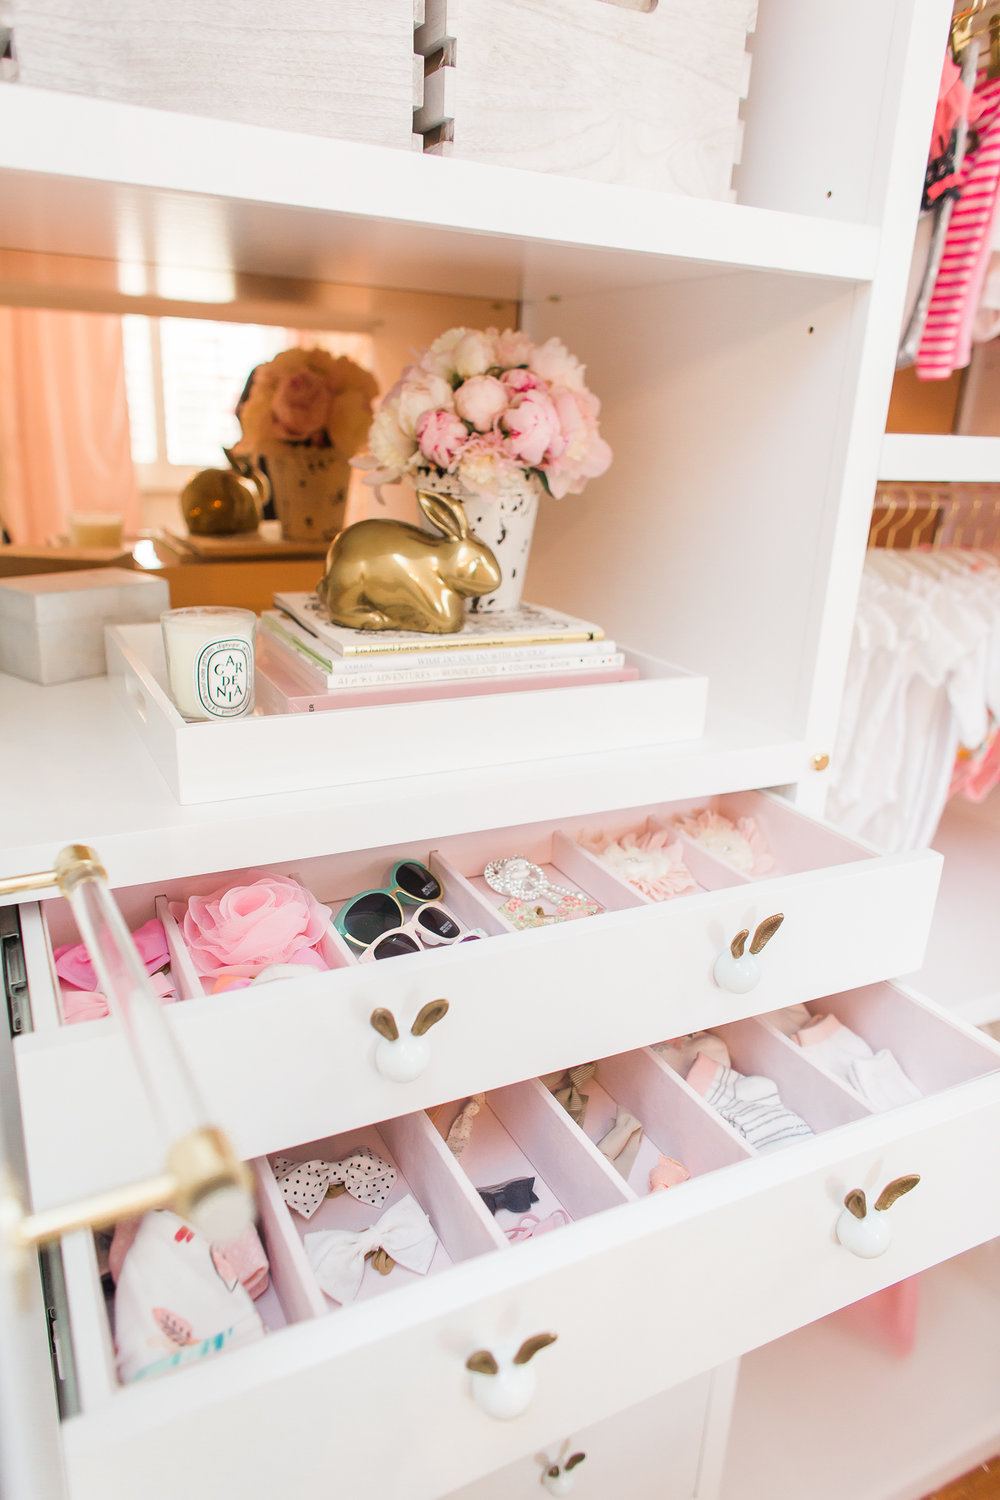 ... Apply For Nursery Closets: Everything Having A Place. When There Is A  Specific Place For Hanging, Shoes, Belts, Dirty Clothes, Underwear, Etc.,  ...